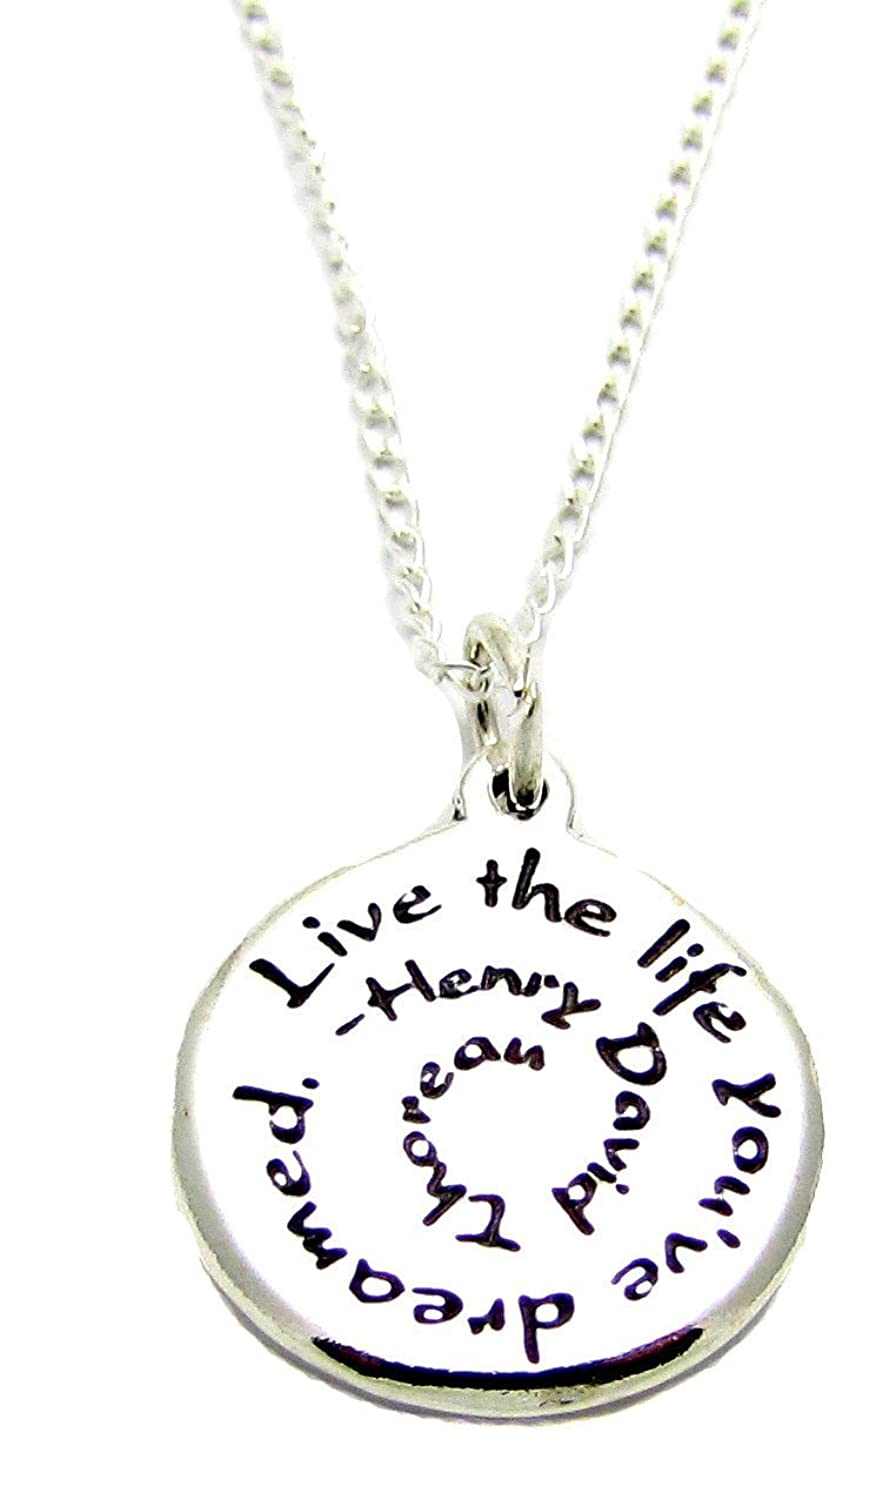 Amazon inspirational jewelry necklace sterling silver henry amazon inspirational jewelry necklace sterling silver henry david thoreau live the life youve dreamed quote jewelry aloadofball Images